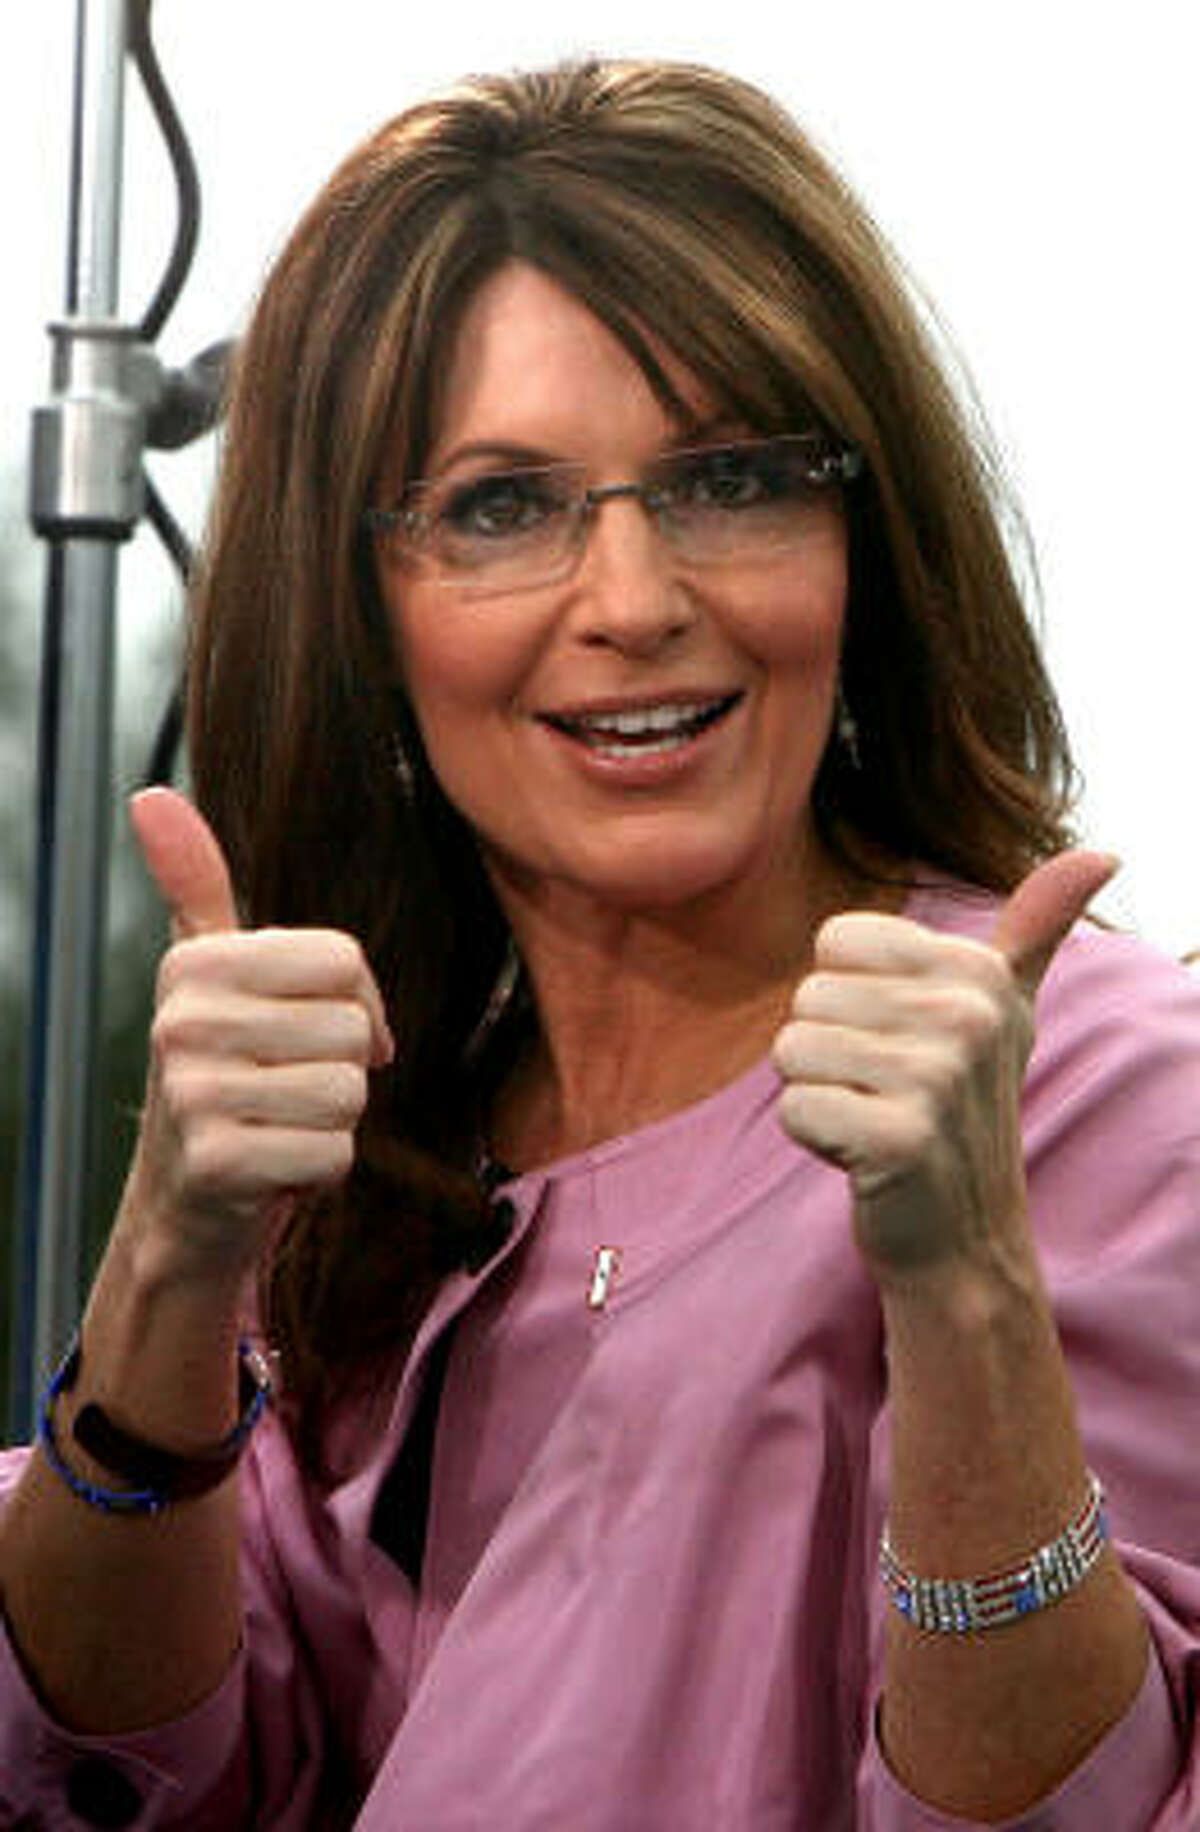 Sarah Palin: McCain aides accused her of